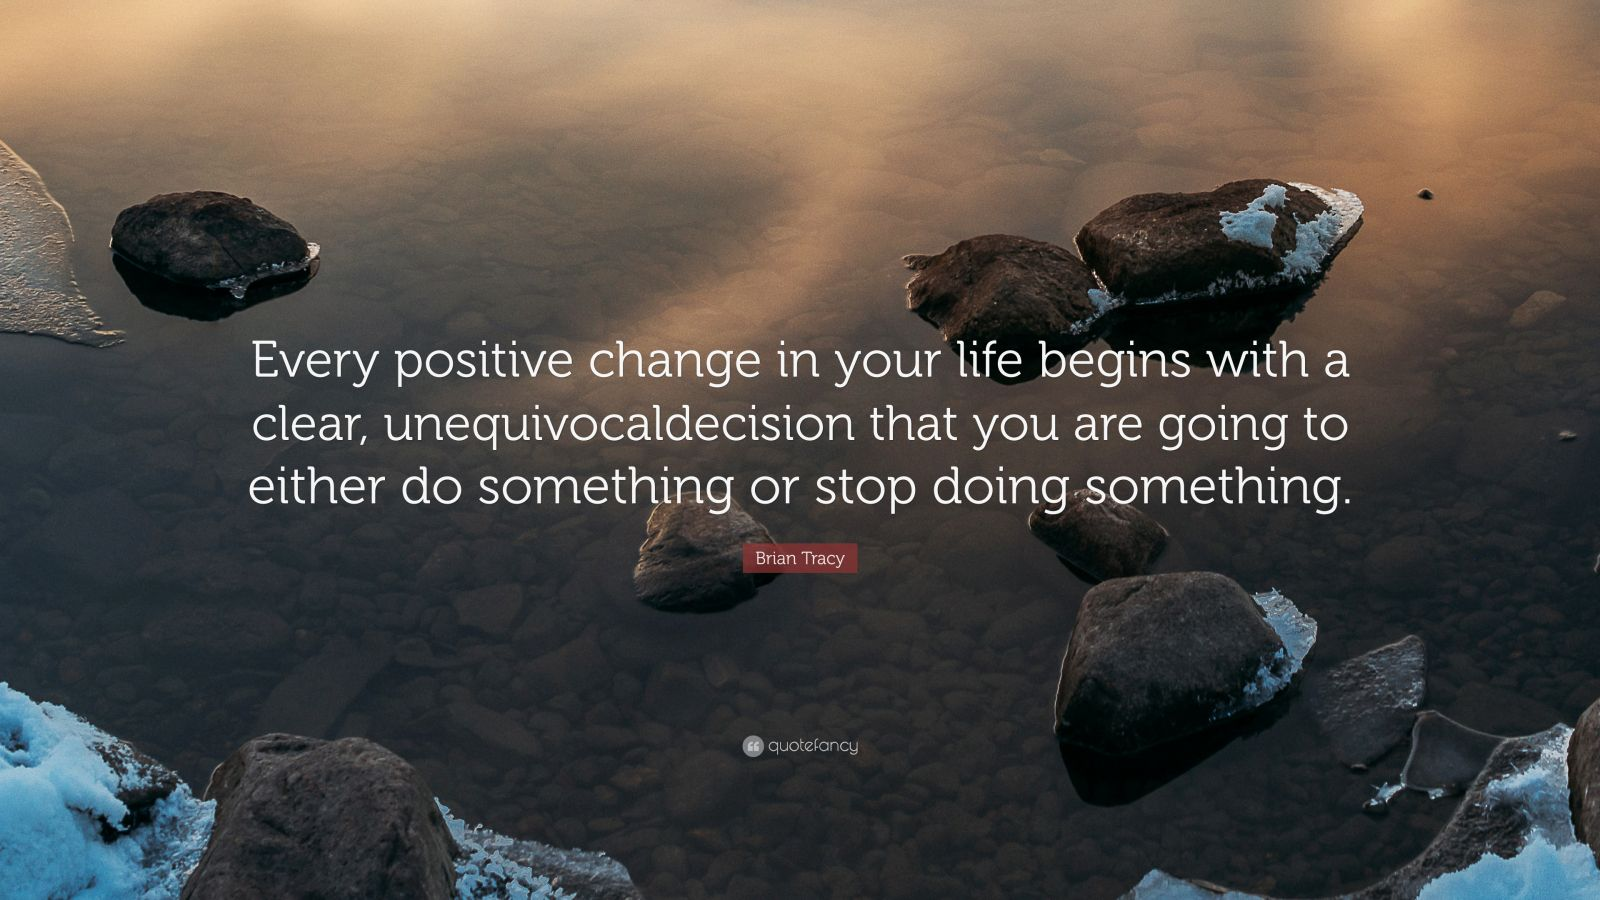 """Brian Tracy Quote: """"Every positive change in your life begins with a clear, unequivocaldecision that you are going to either do something or stop doing something."""""""